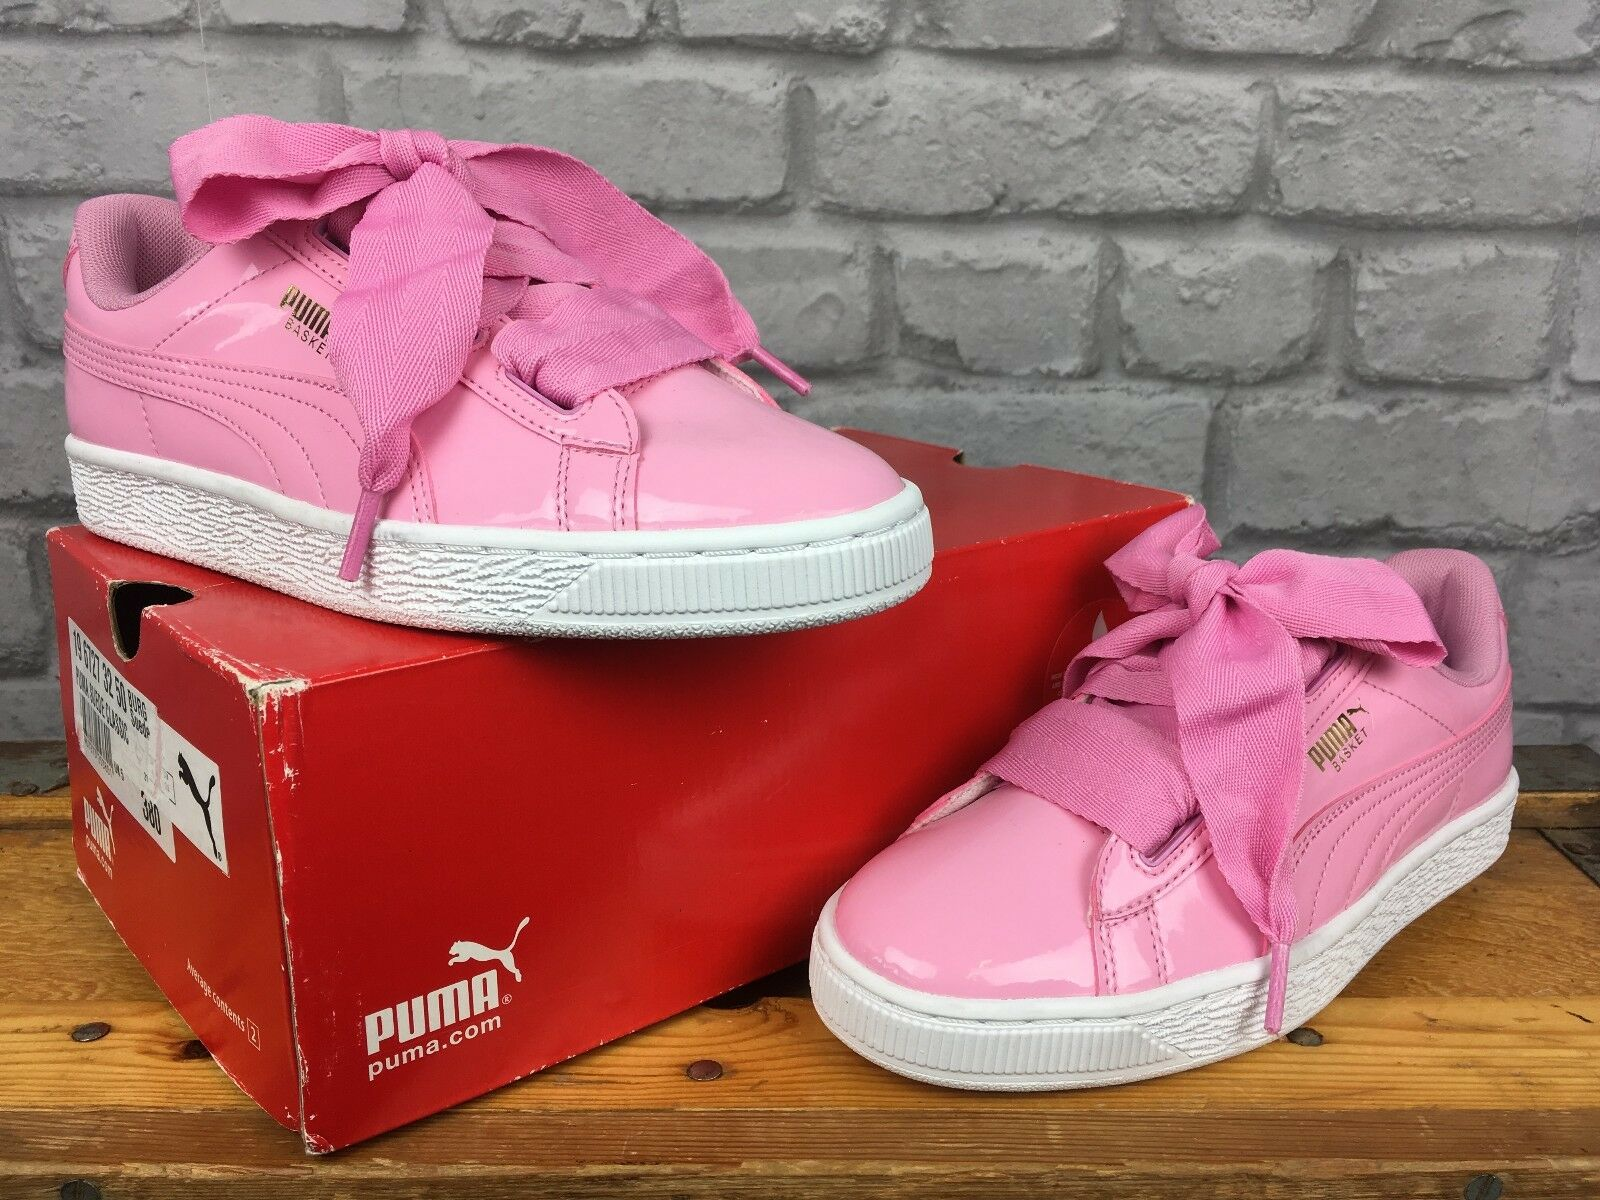 PUMA LUK 5 EU 38 PRISM rose PATENT BASKET HEART TRAINERS GIRLS CH-ILDREN LADIES